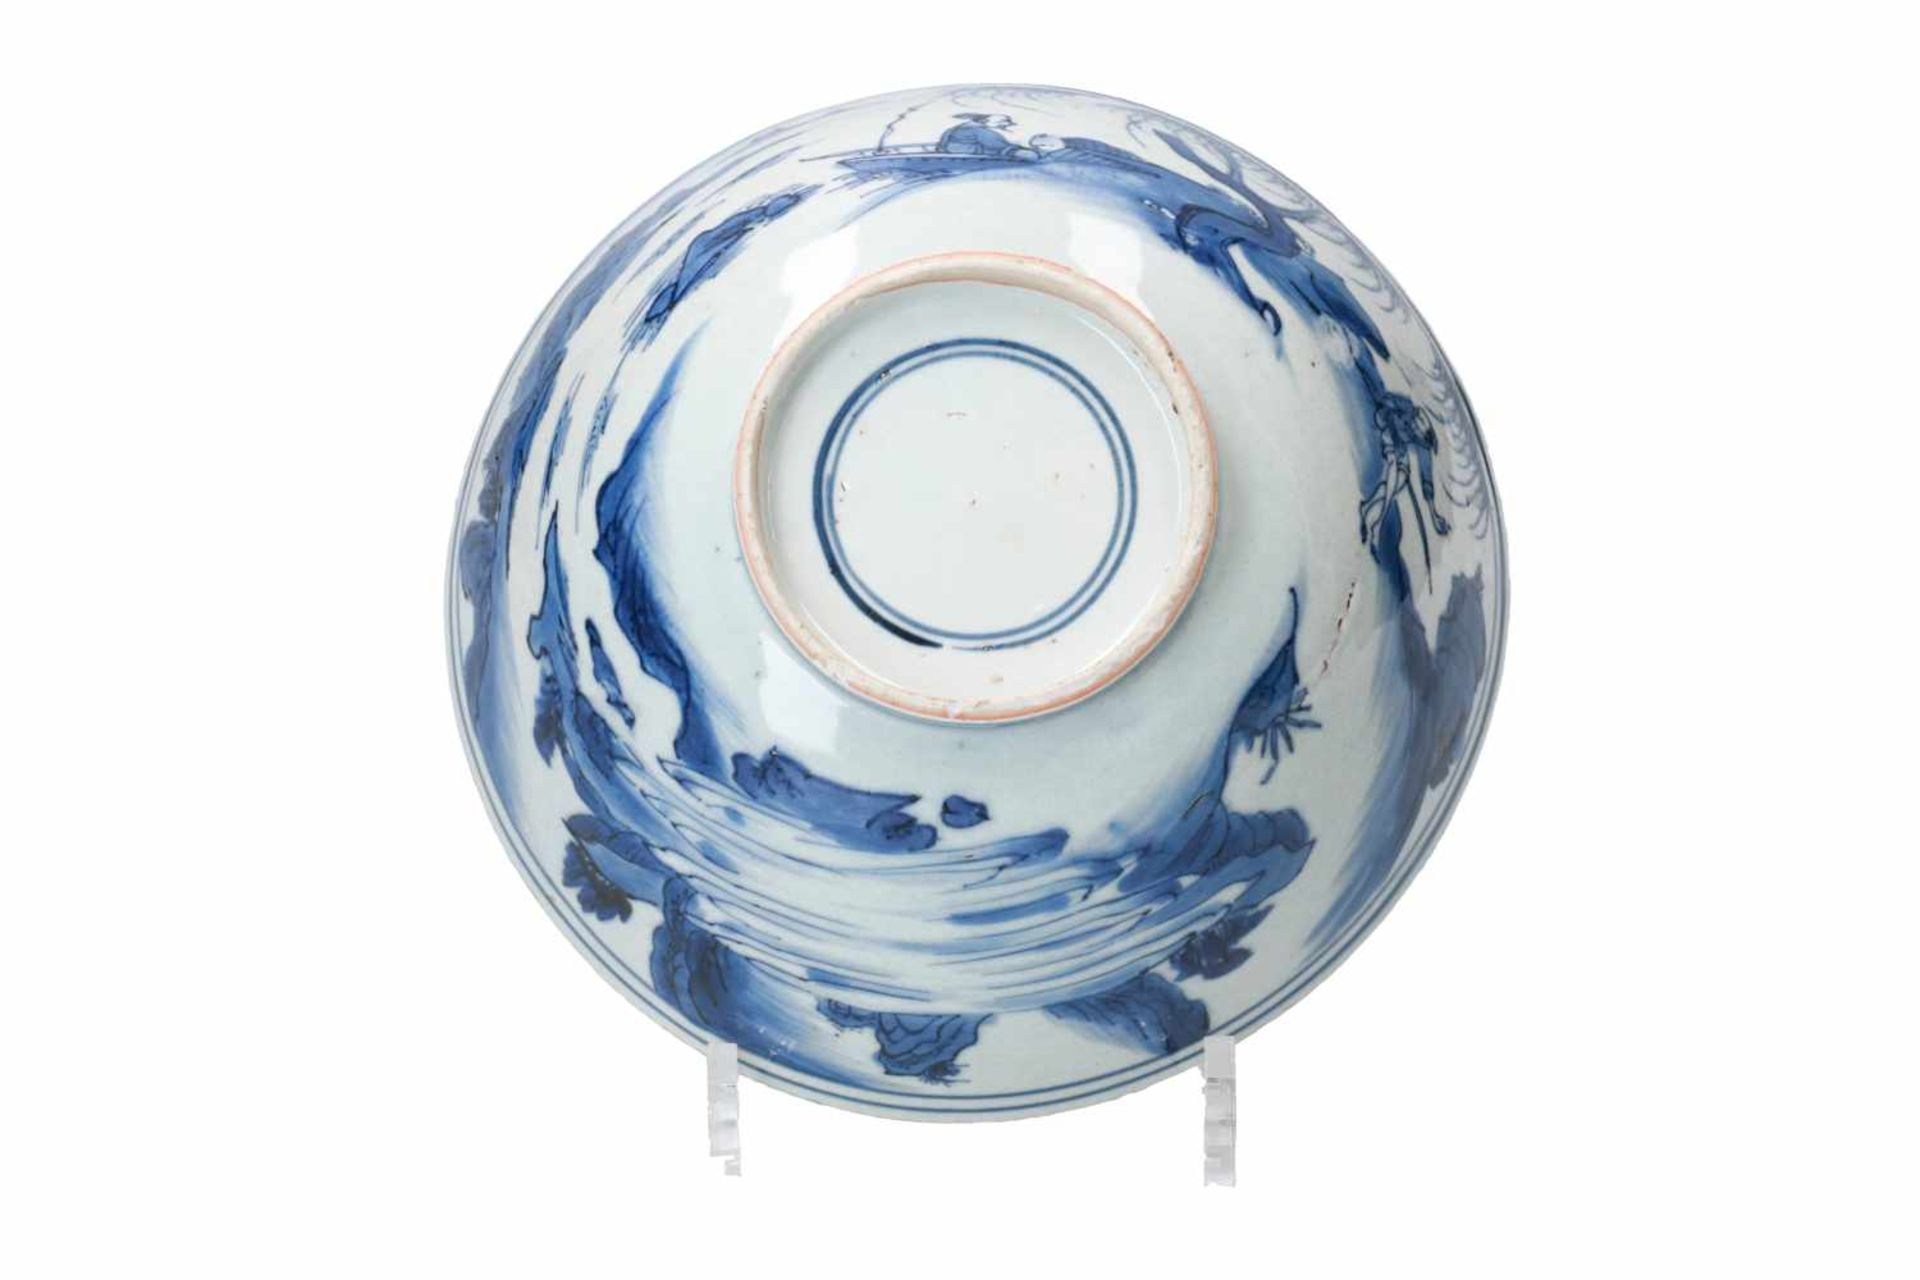 A blue and white porcelain bowl, decorated with a past-master in a mountainous river landscape. - Bild 6 aus 6